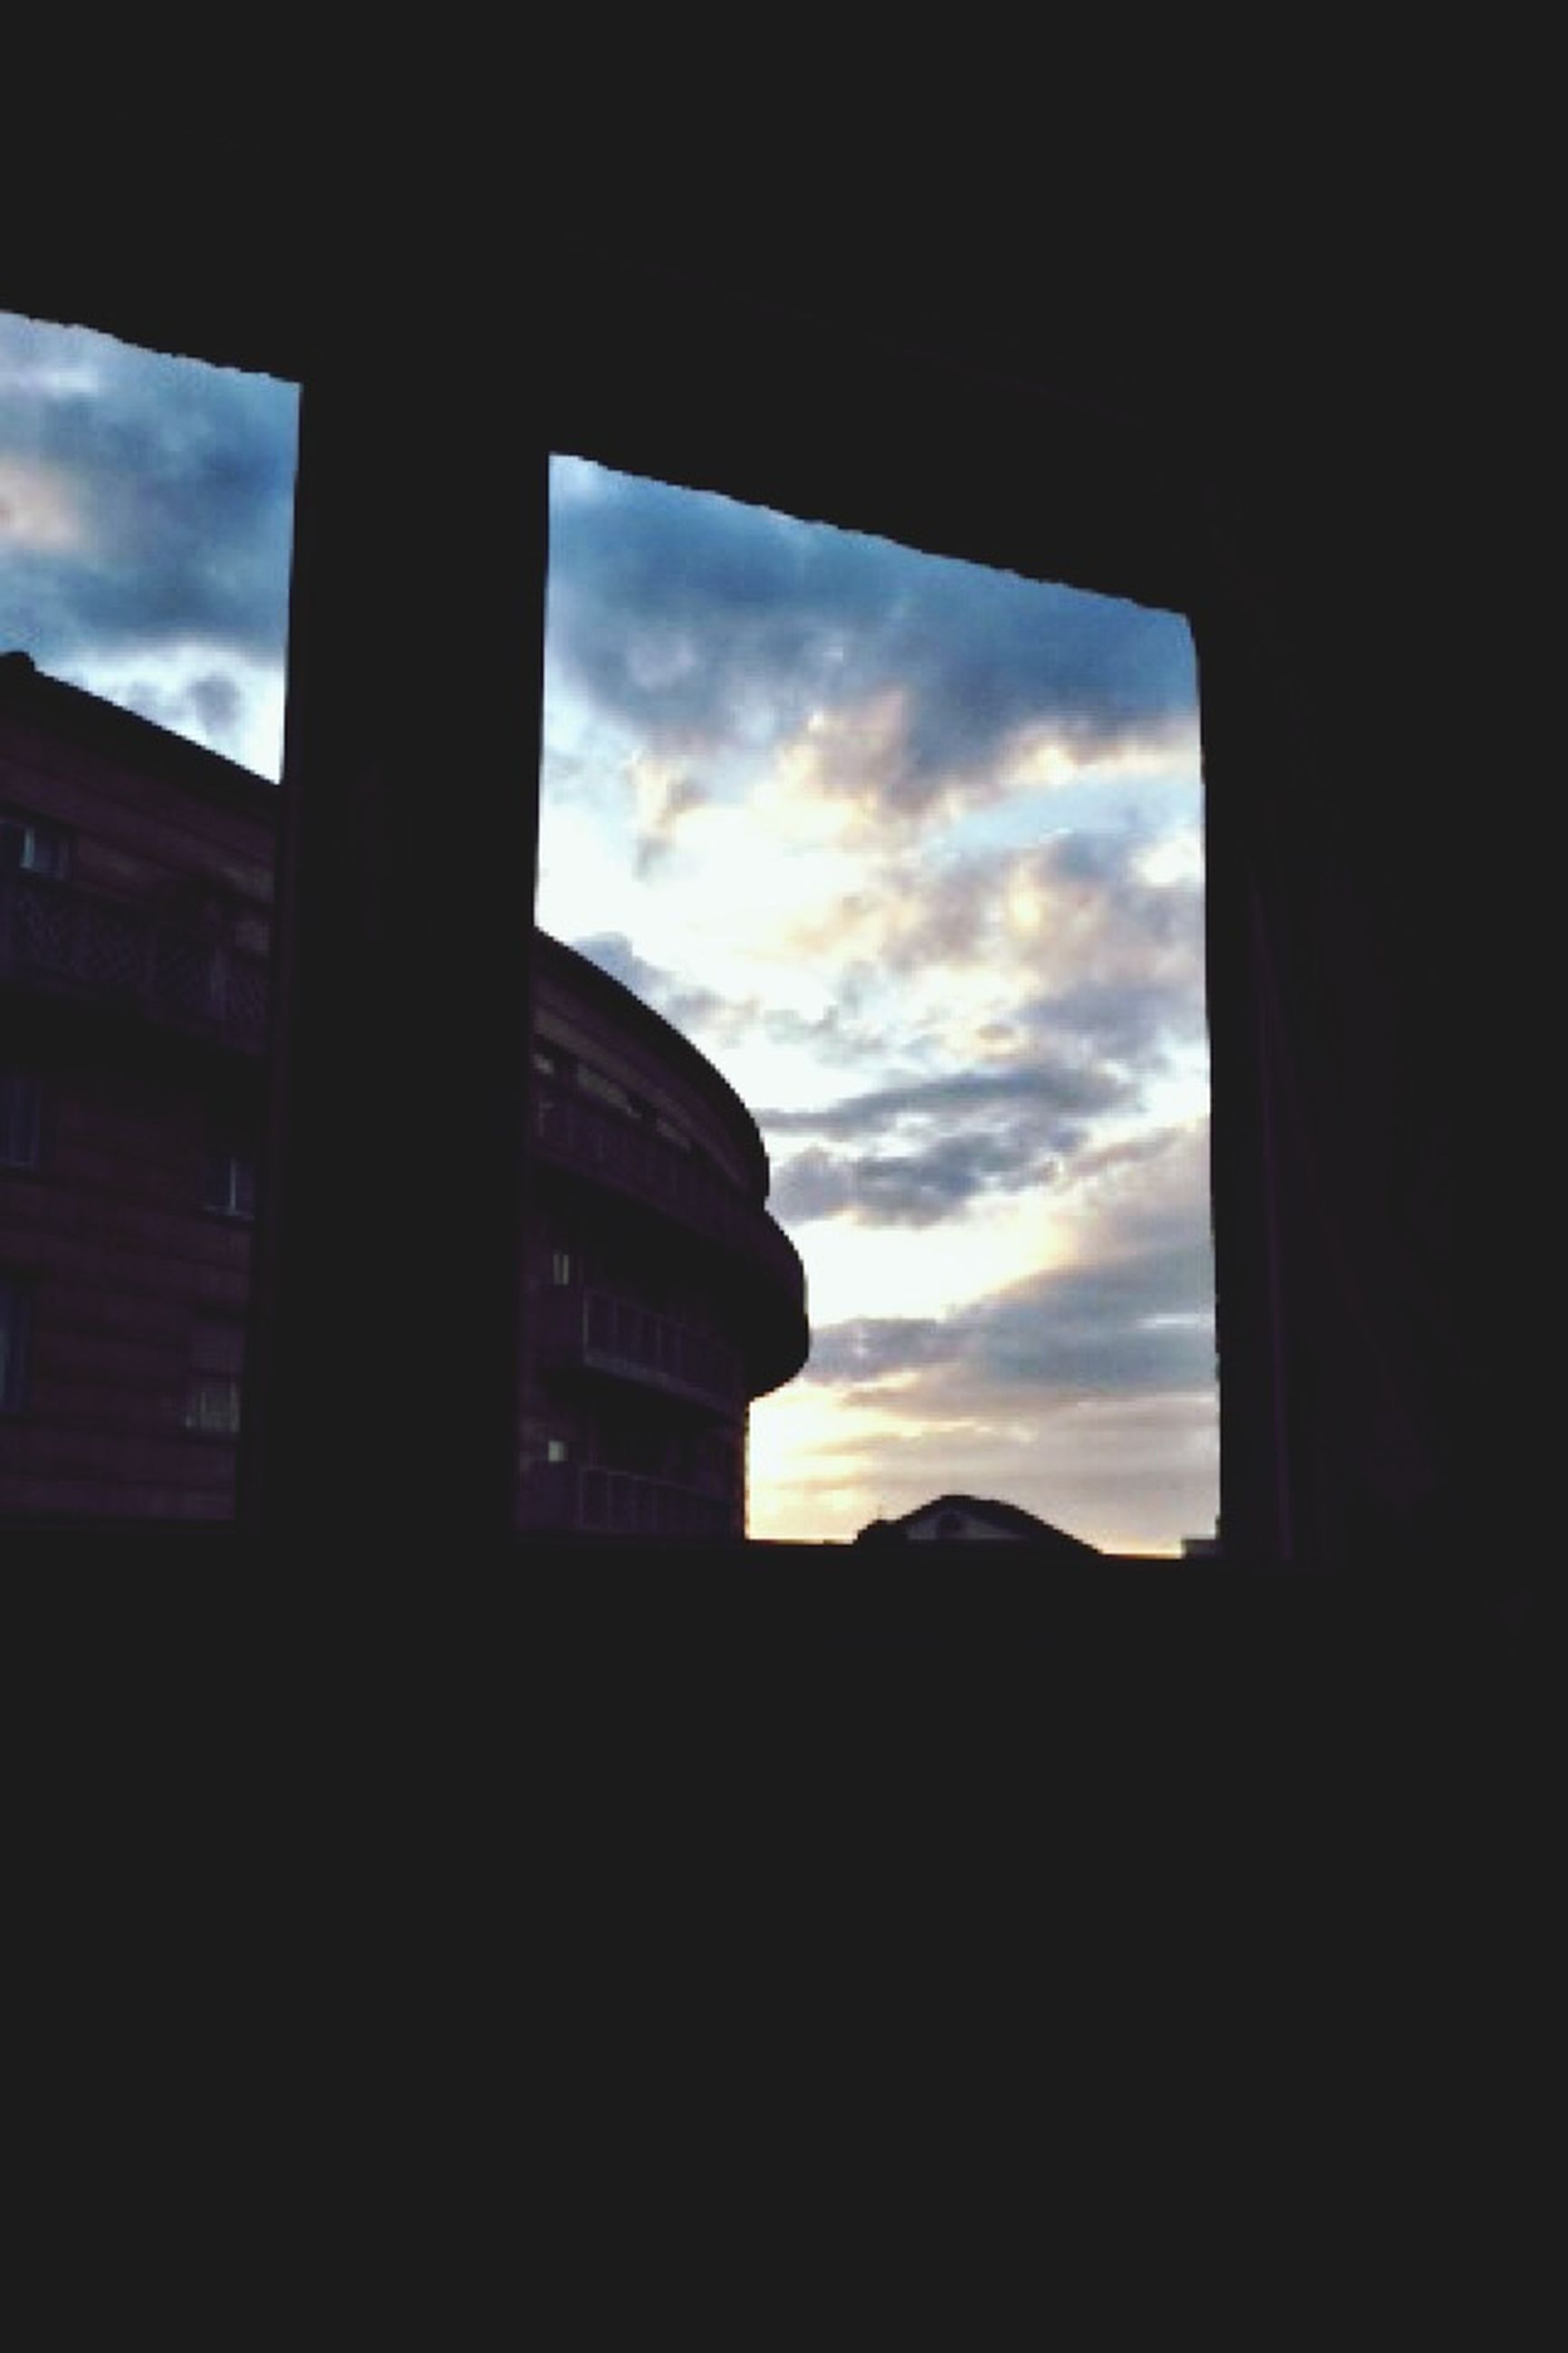 architecture, sky, silhouette, built structure, window, indoors, cloud - sky, dark, building exterior, cloud, sunset, glass - material, building, cloudy, low angle view, no people, transparent, dusk, city, looking through window